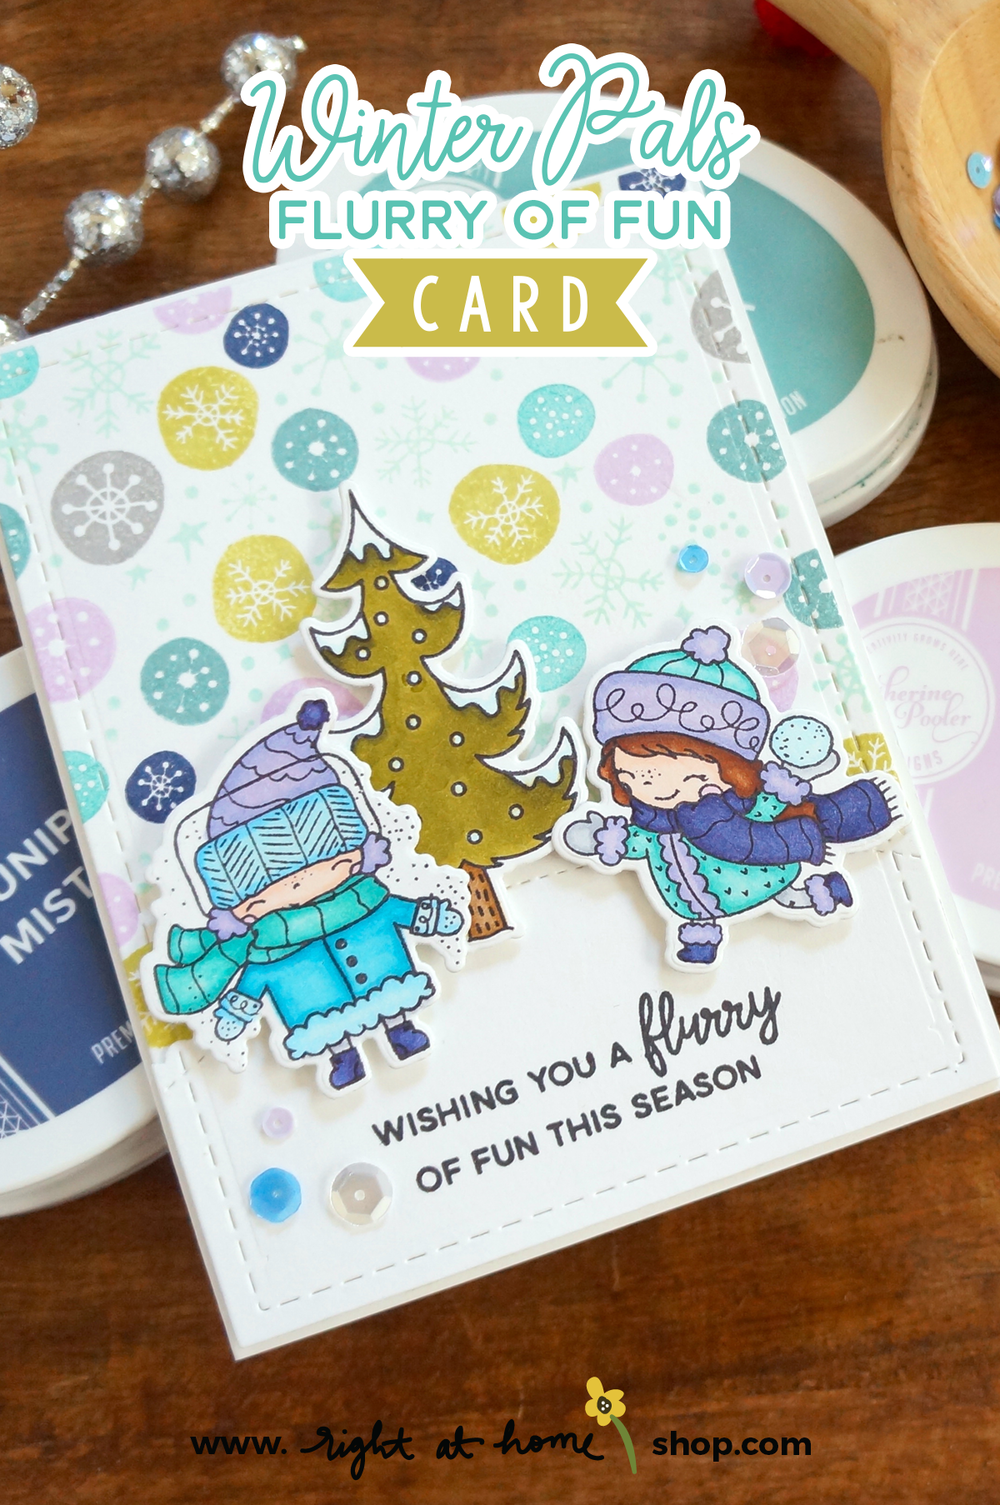 Winter Pals Flurry of Fun Card // rightathomeshop.com/blog